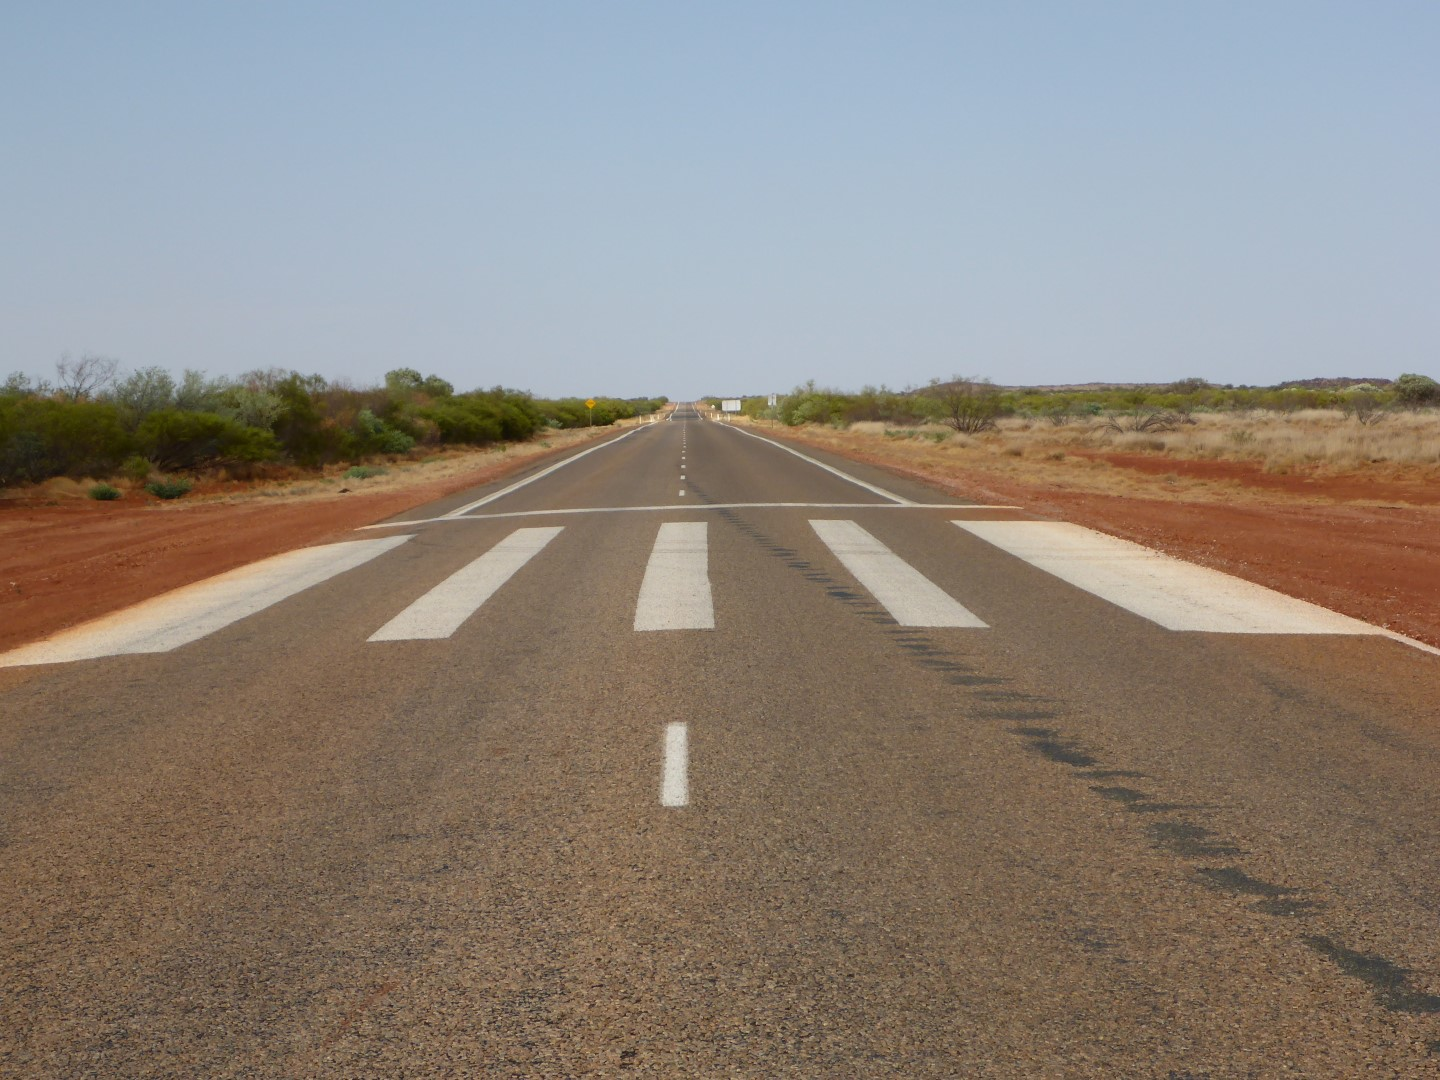 Runway markings on the road.